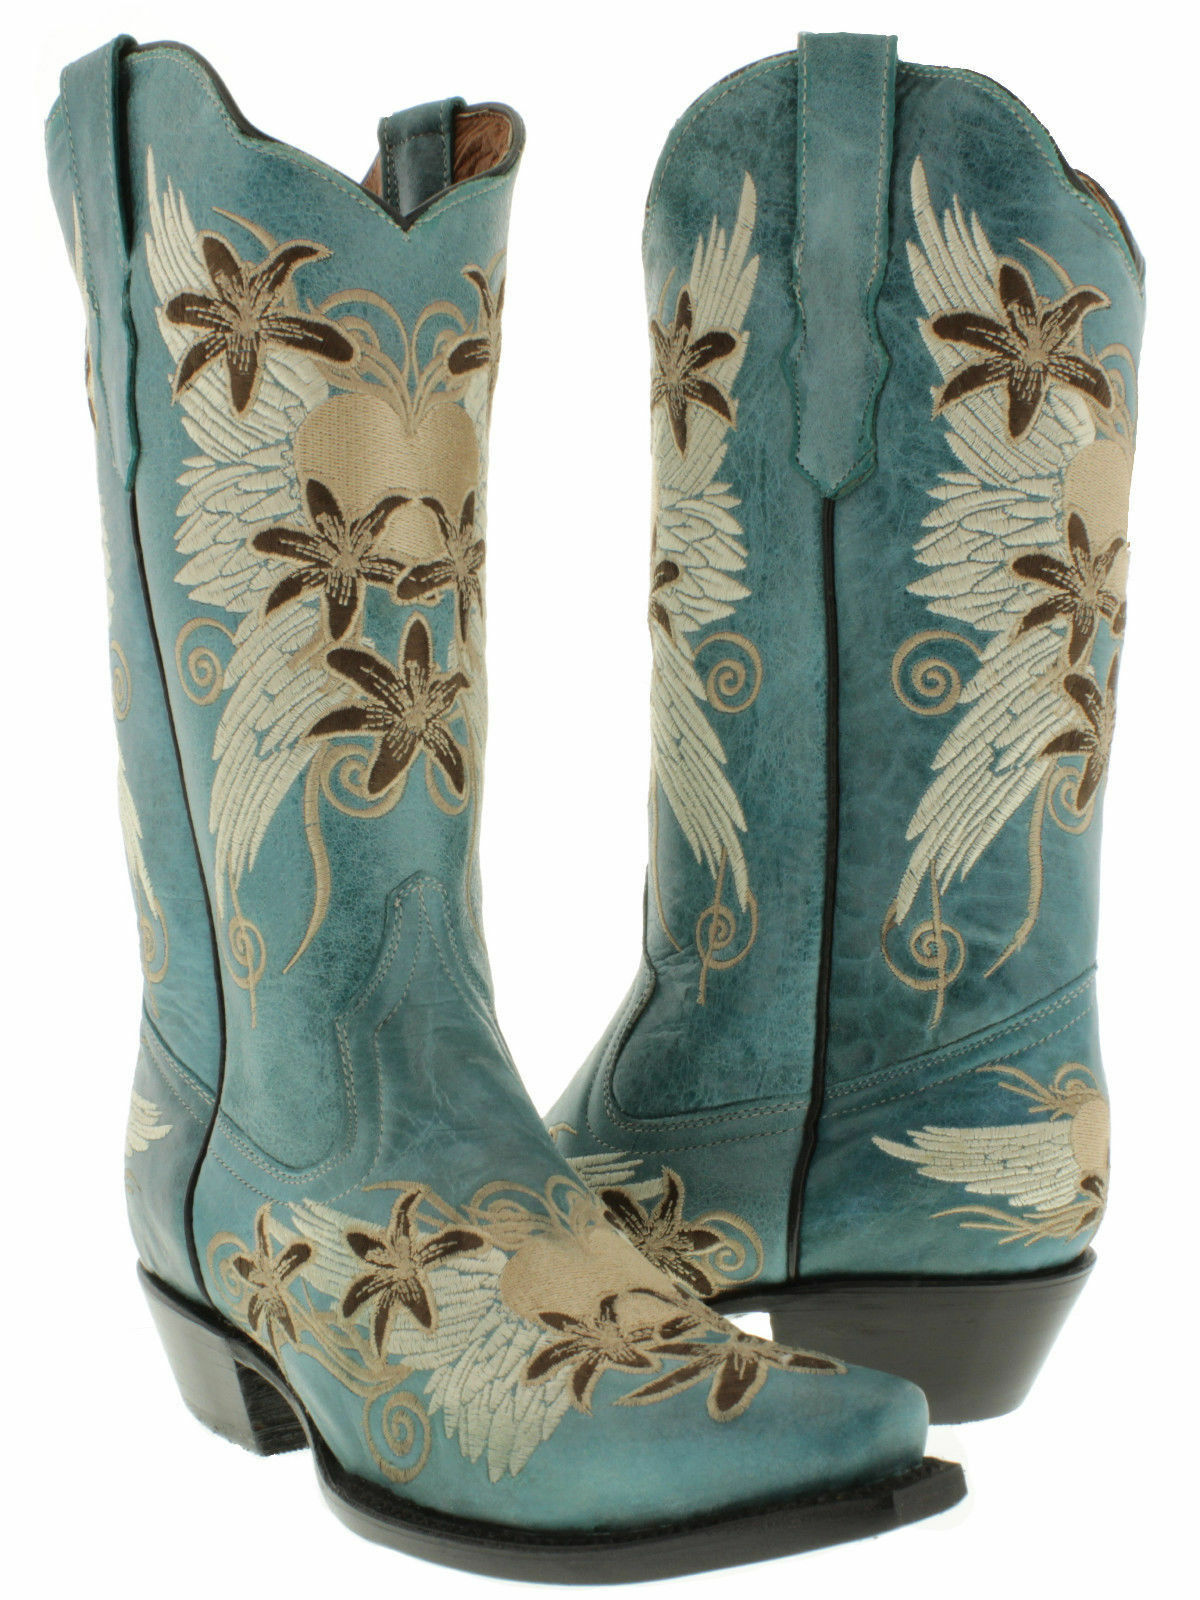 Womens Turquoise Wings Heart Embroidered Western Leather Cowboy Cowgirl Boots